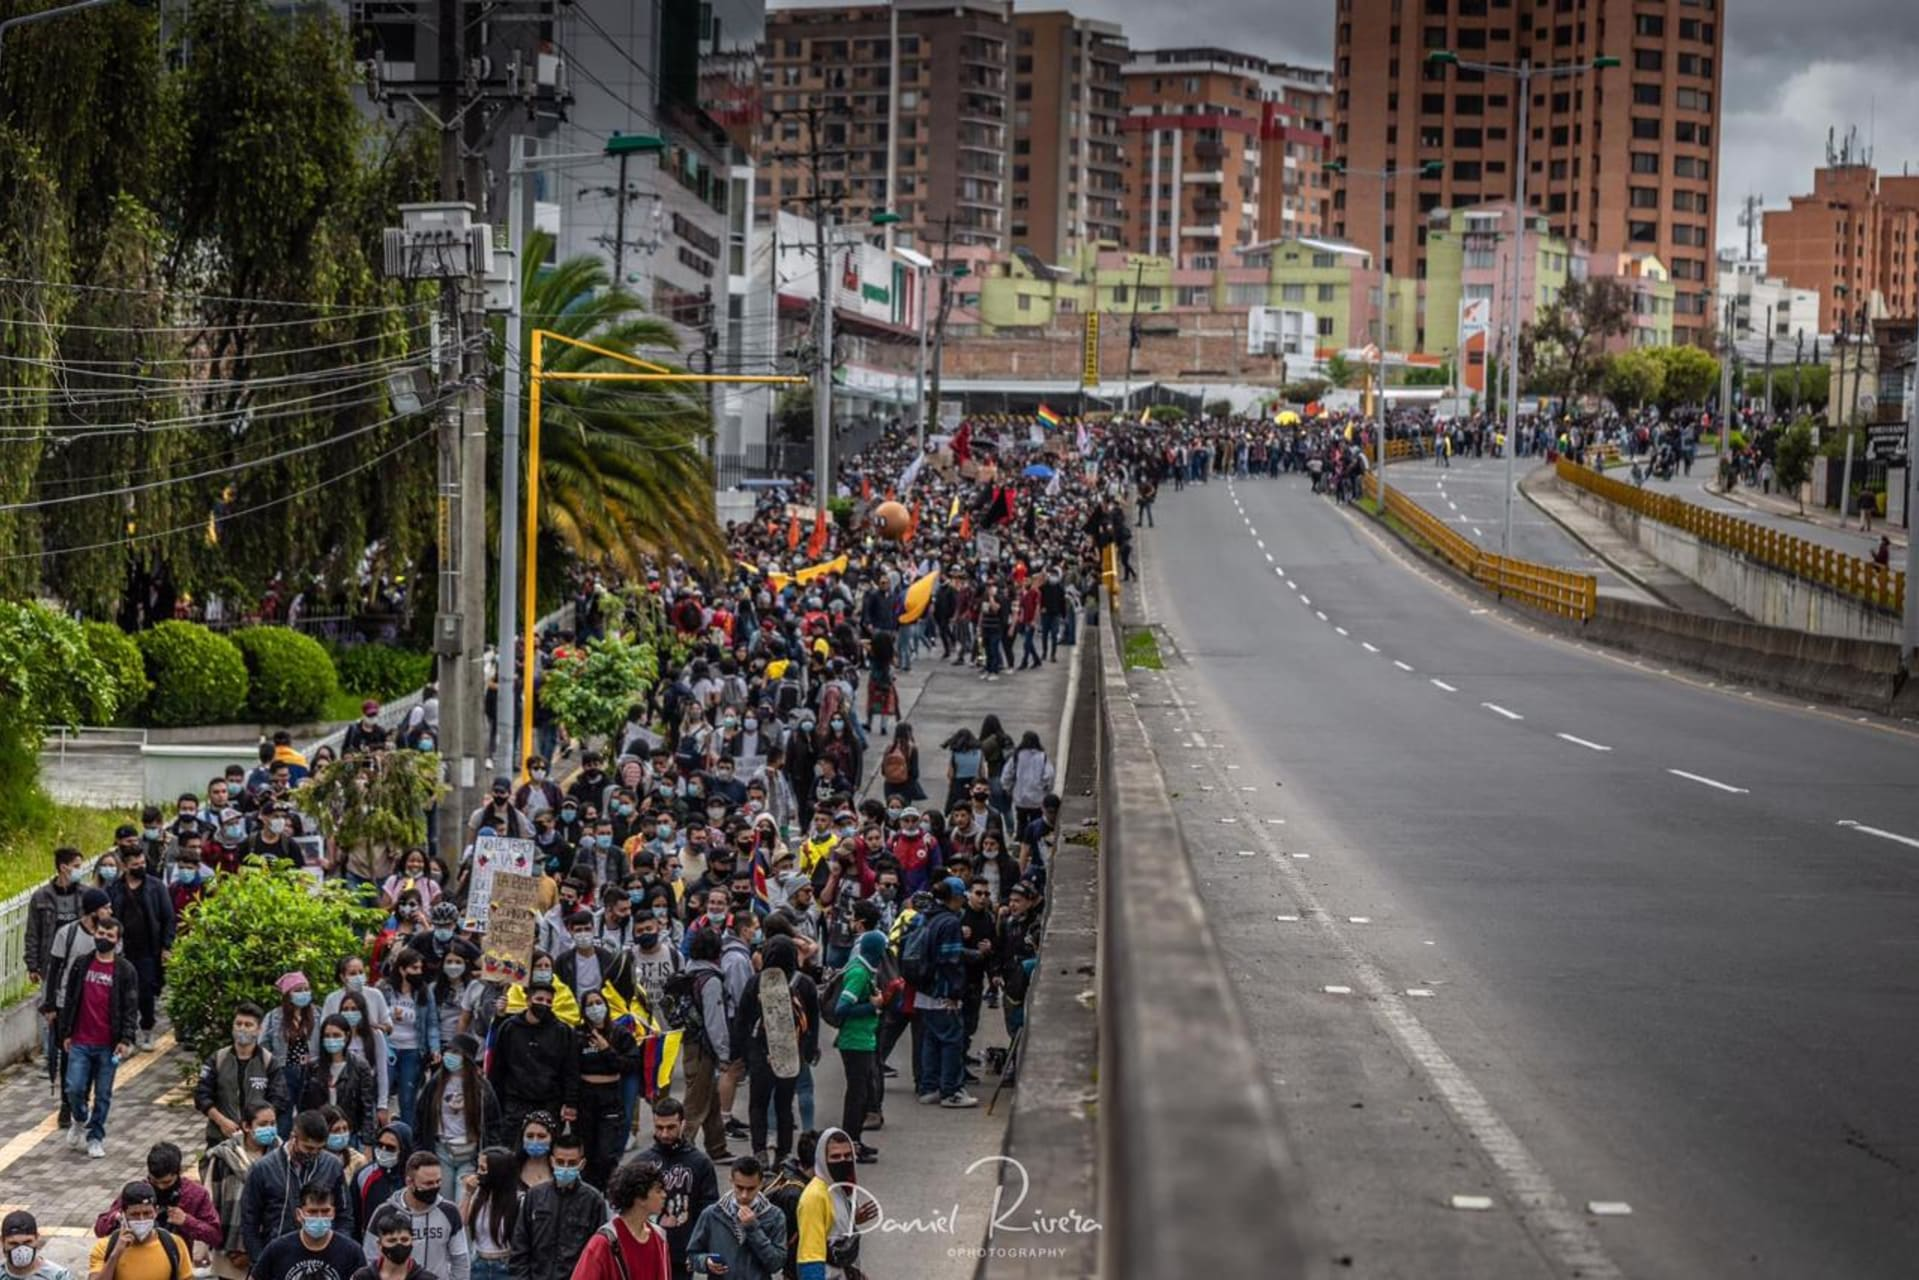 Pasto - Live protest in Colombia against the tax reform.